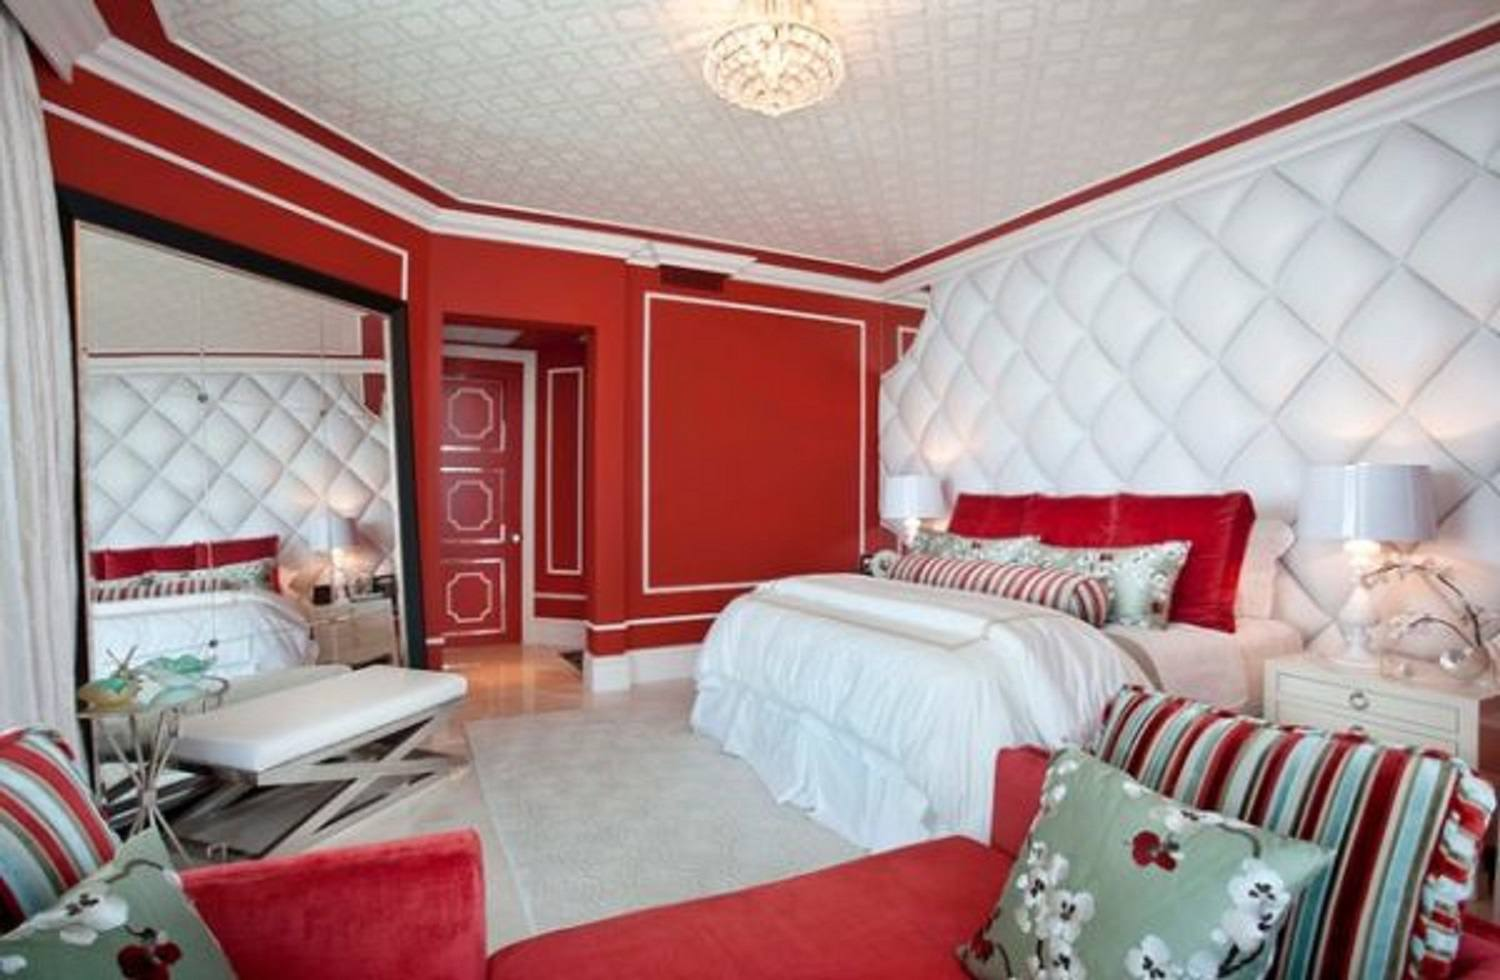 Red and white Hollywood regency bedroom